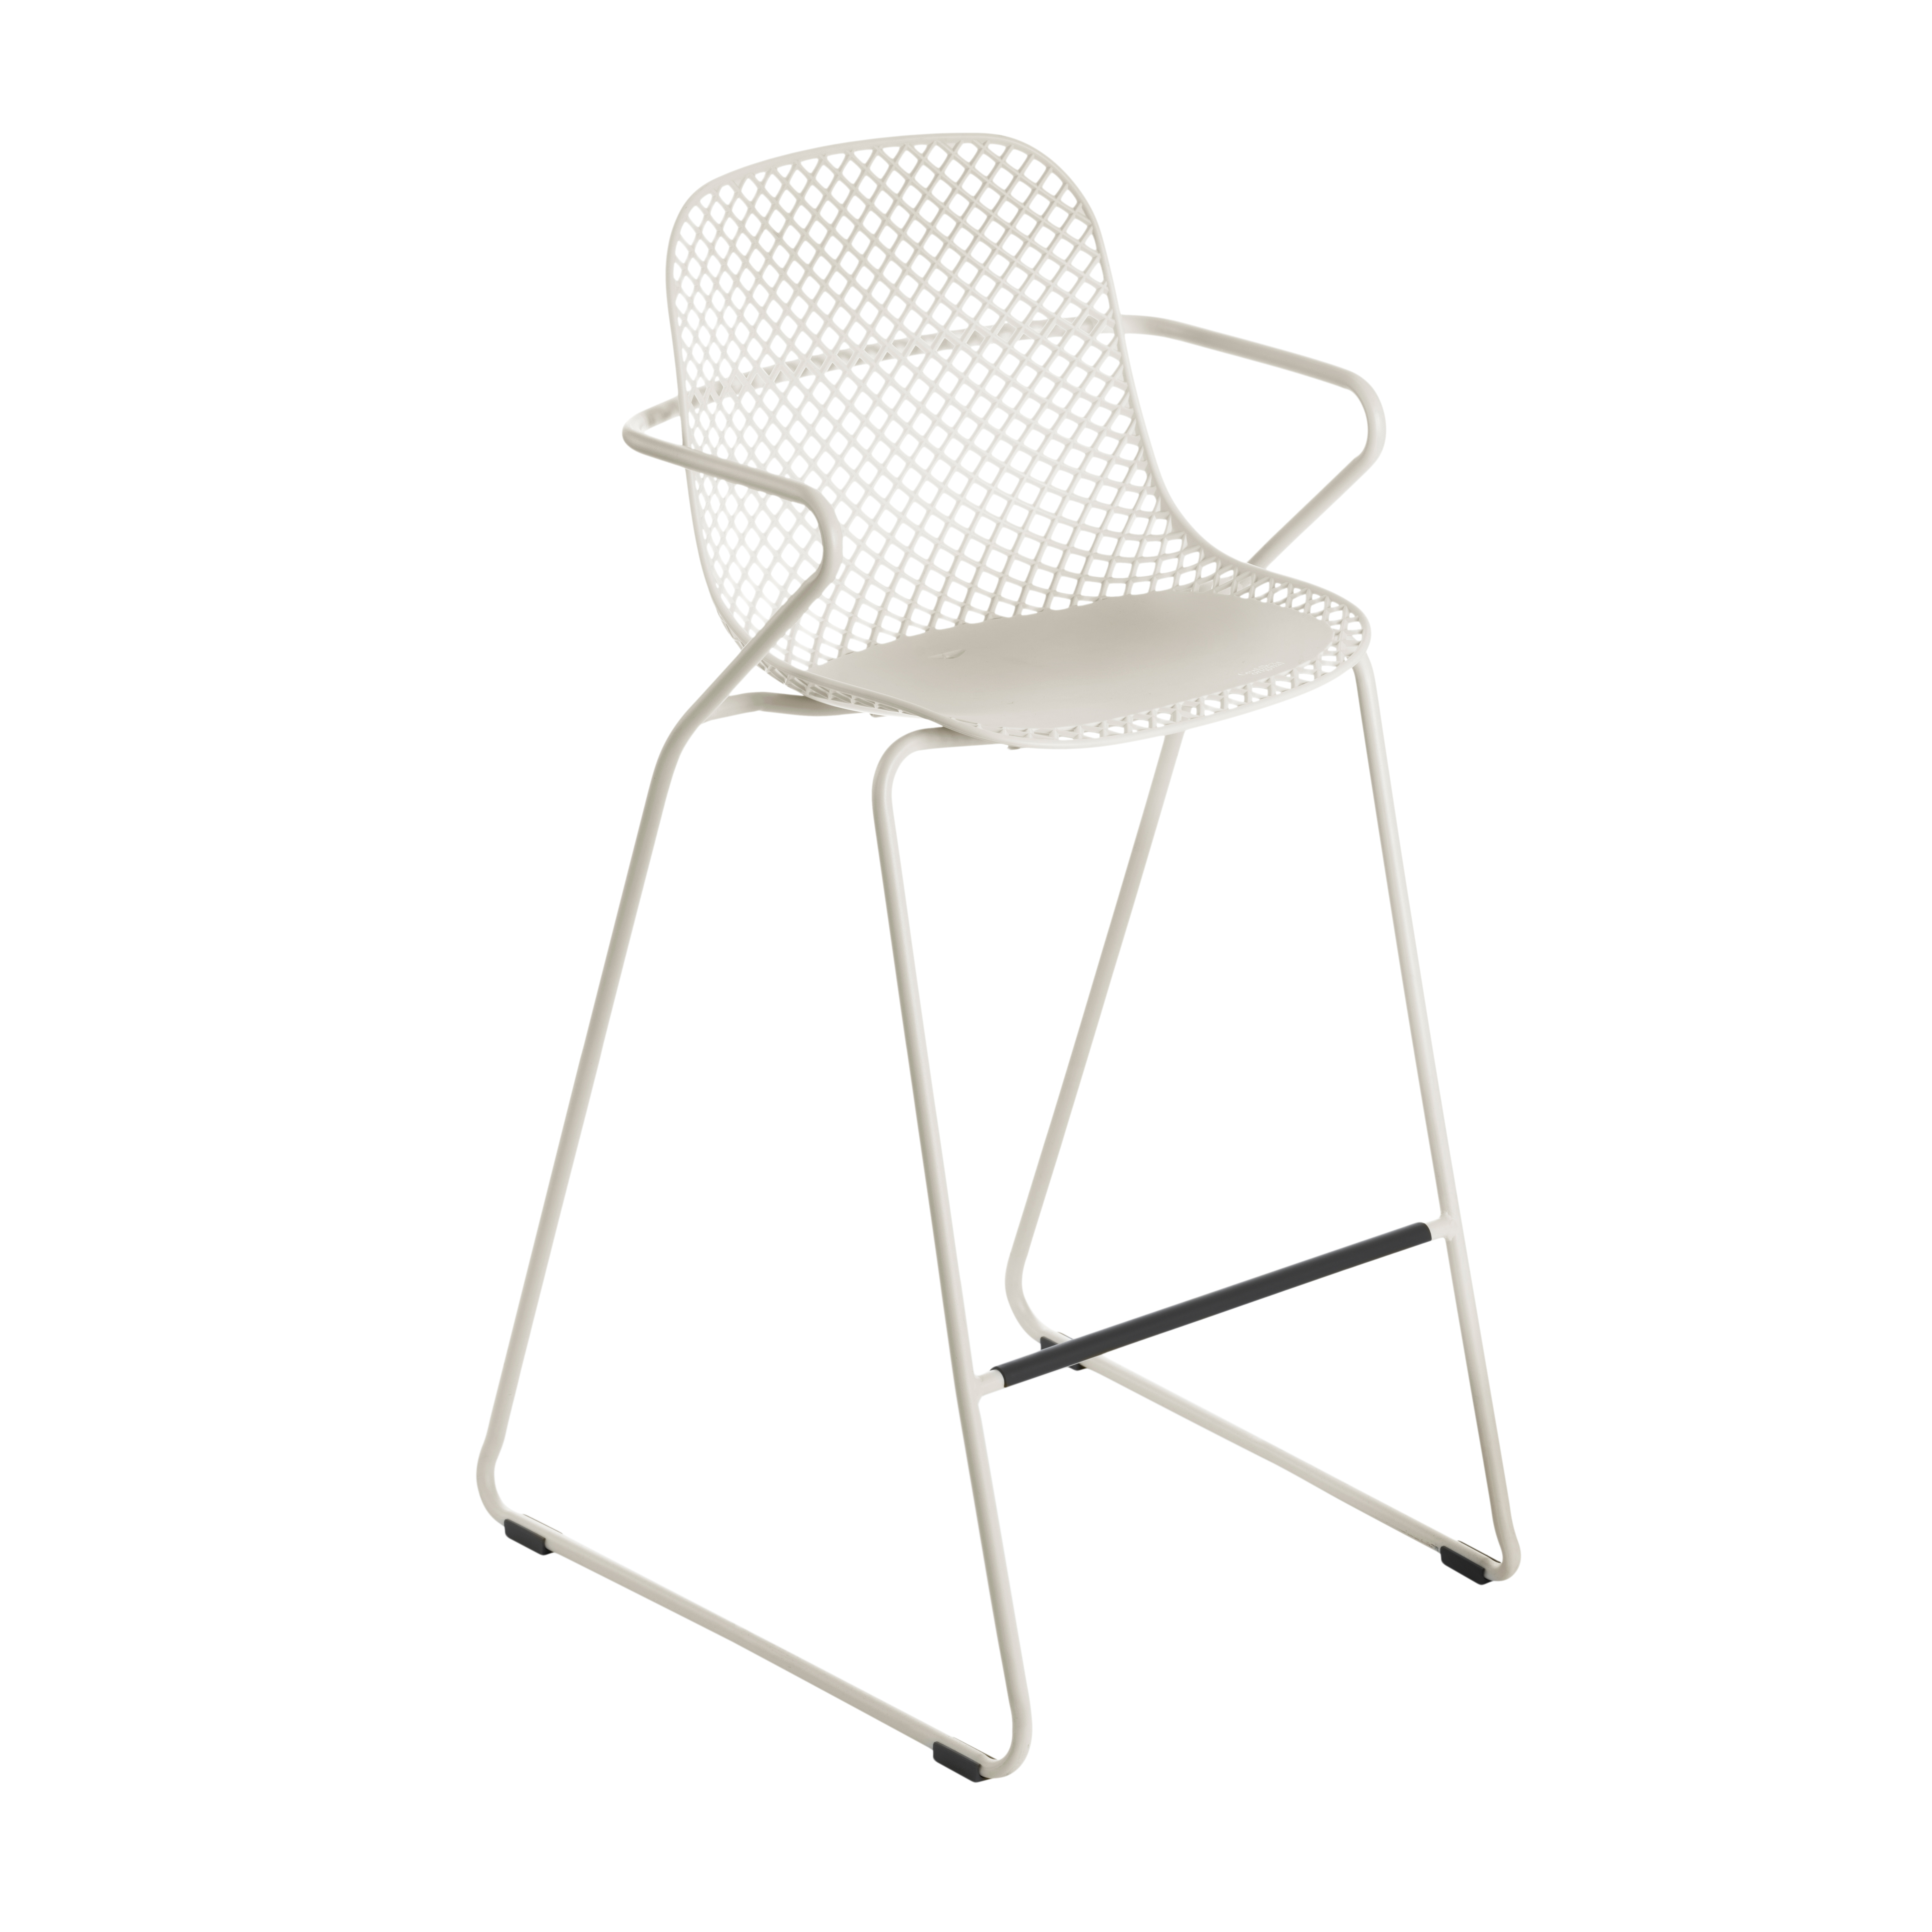 Grosfillex US139710 bar stool, stacking, outdoor